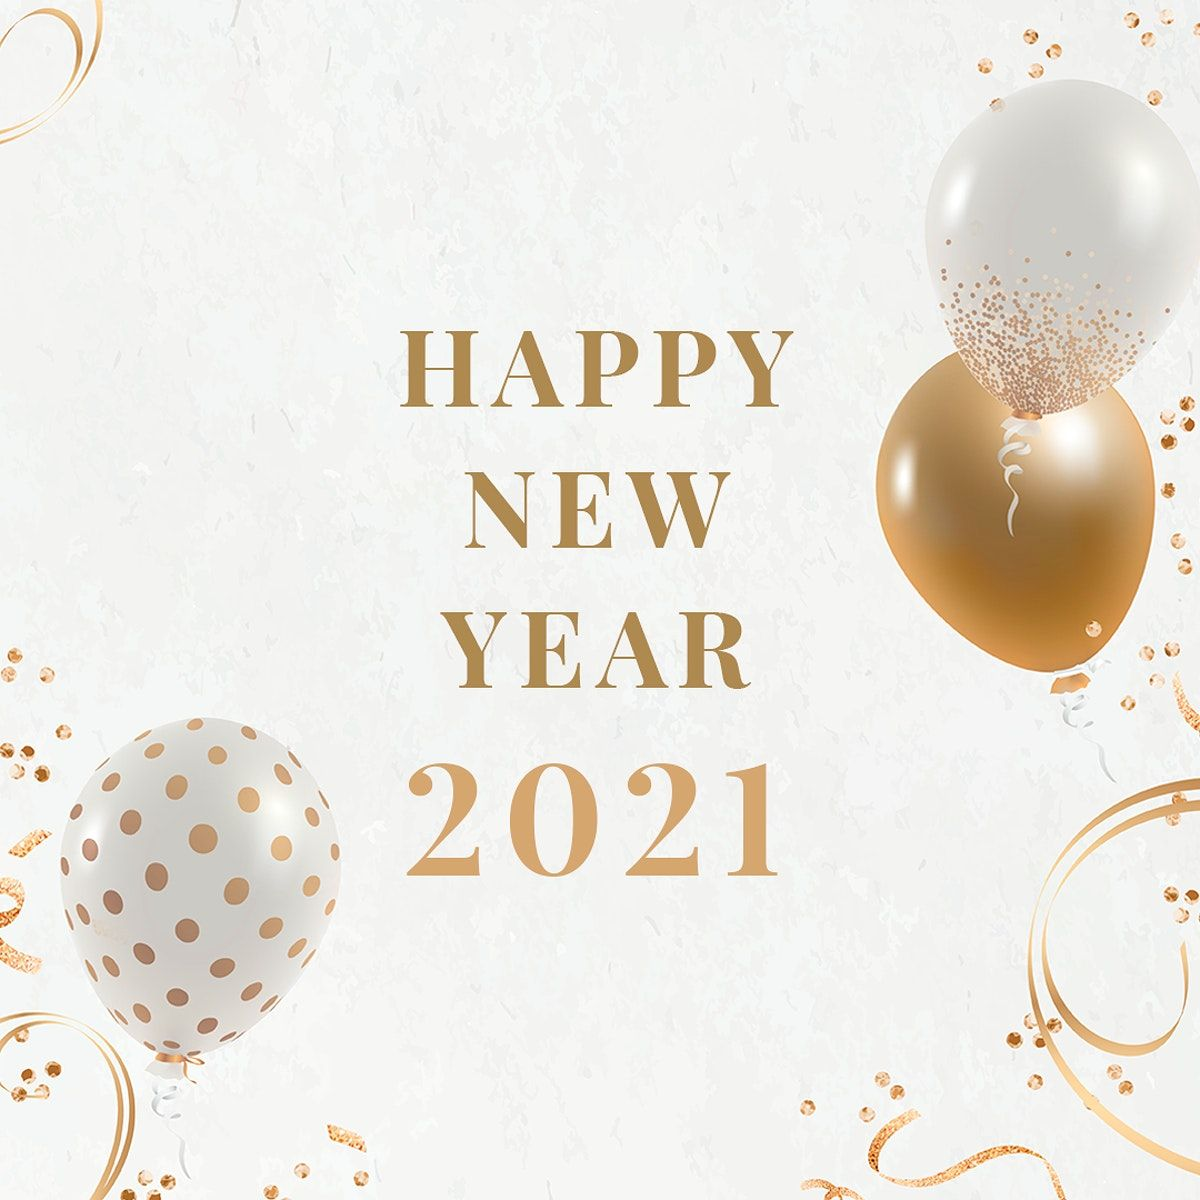 Download Premium Illustration Of New Year 2021 Editable Template Psd Instagram Template Free Newyear New Year Post